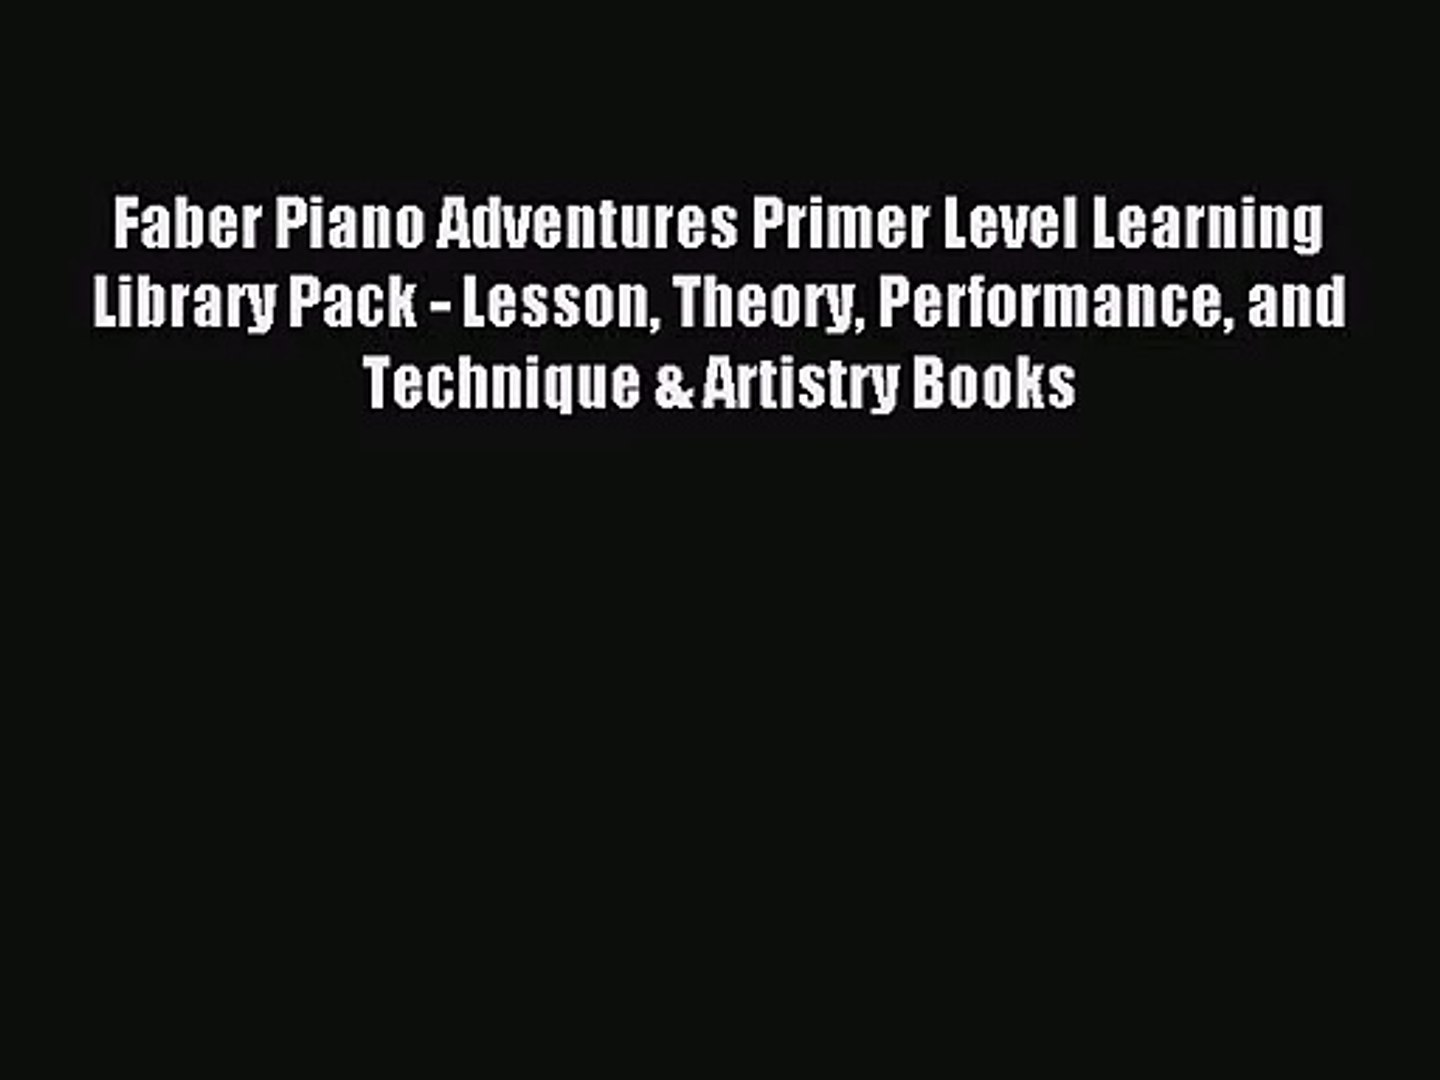 NEW FABER PIANO ADVENTURES LEVEL 2A 4 BOOK PACK LESSON THEORY TECHNIQUE